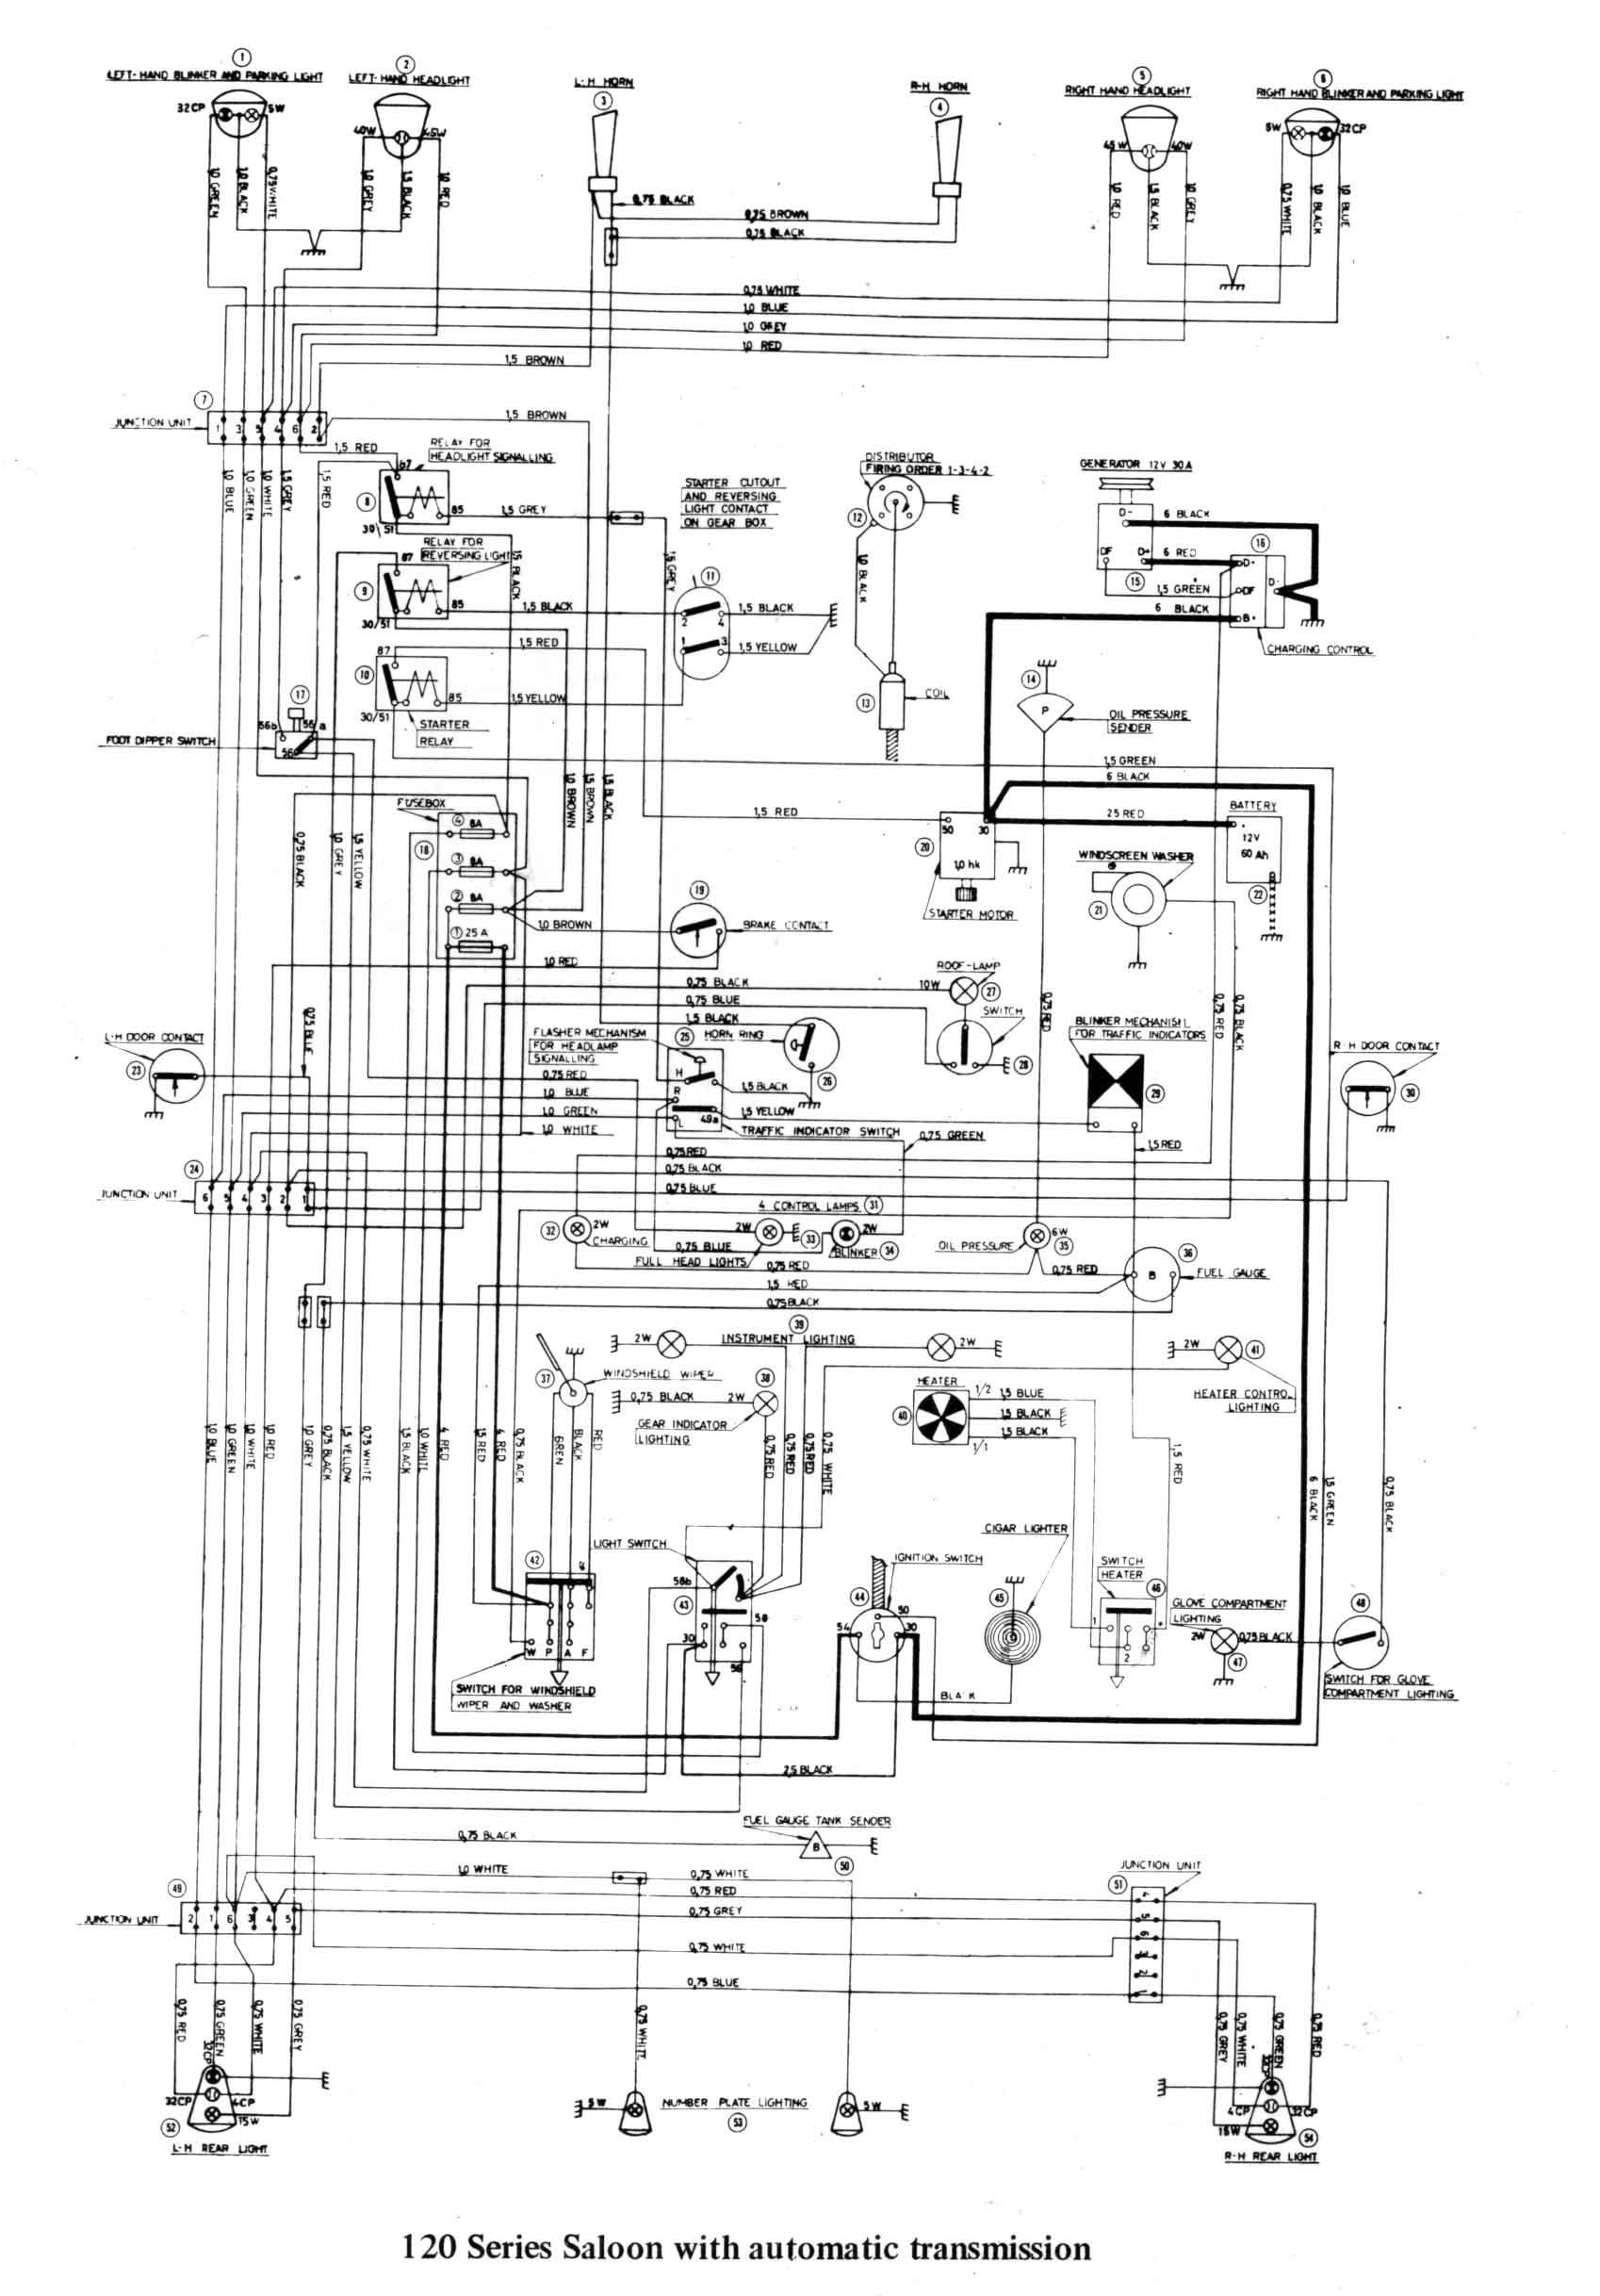 Turn Signal Wiring Diagram Motorcycle Turn Signal Wiring Diagram Turn Signal Wiring Diagram New Sw Em Od Of Turn Signal Wiring Diagram Motorcycle